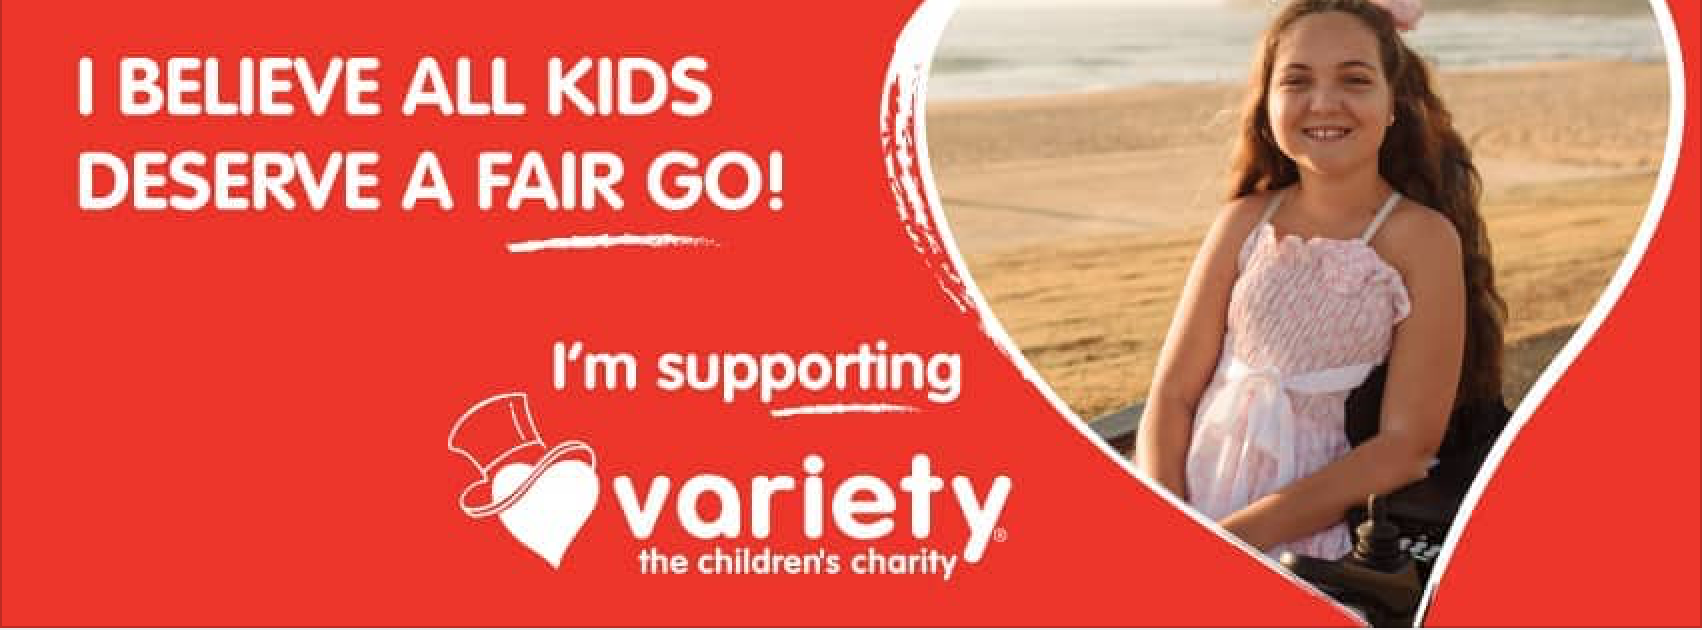 Variety Facebook Cover Image